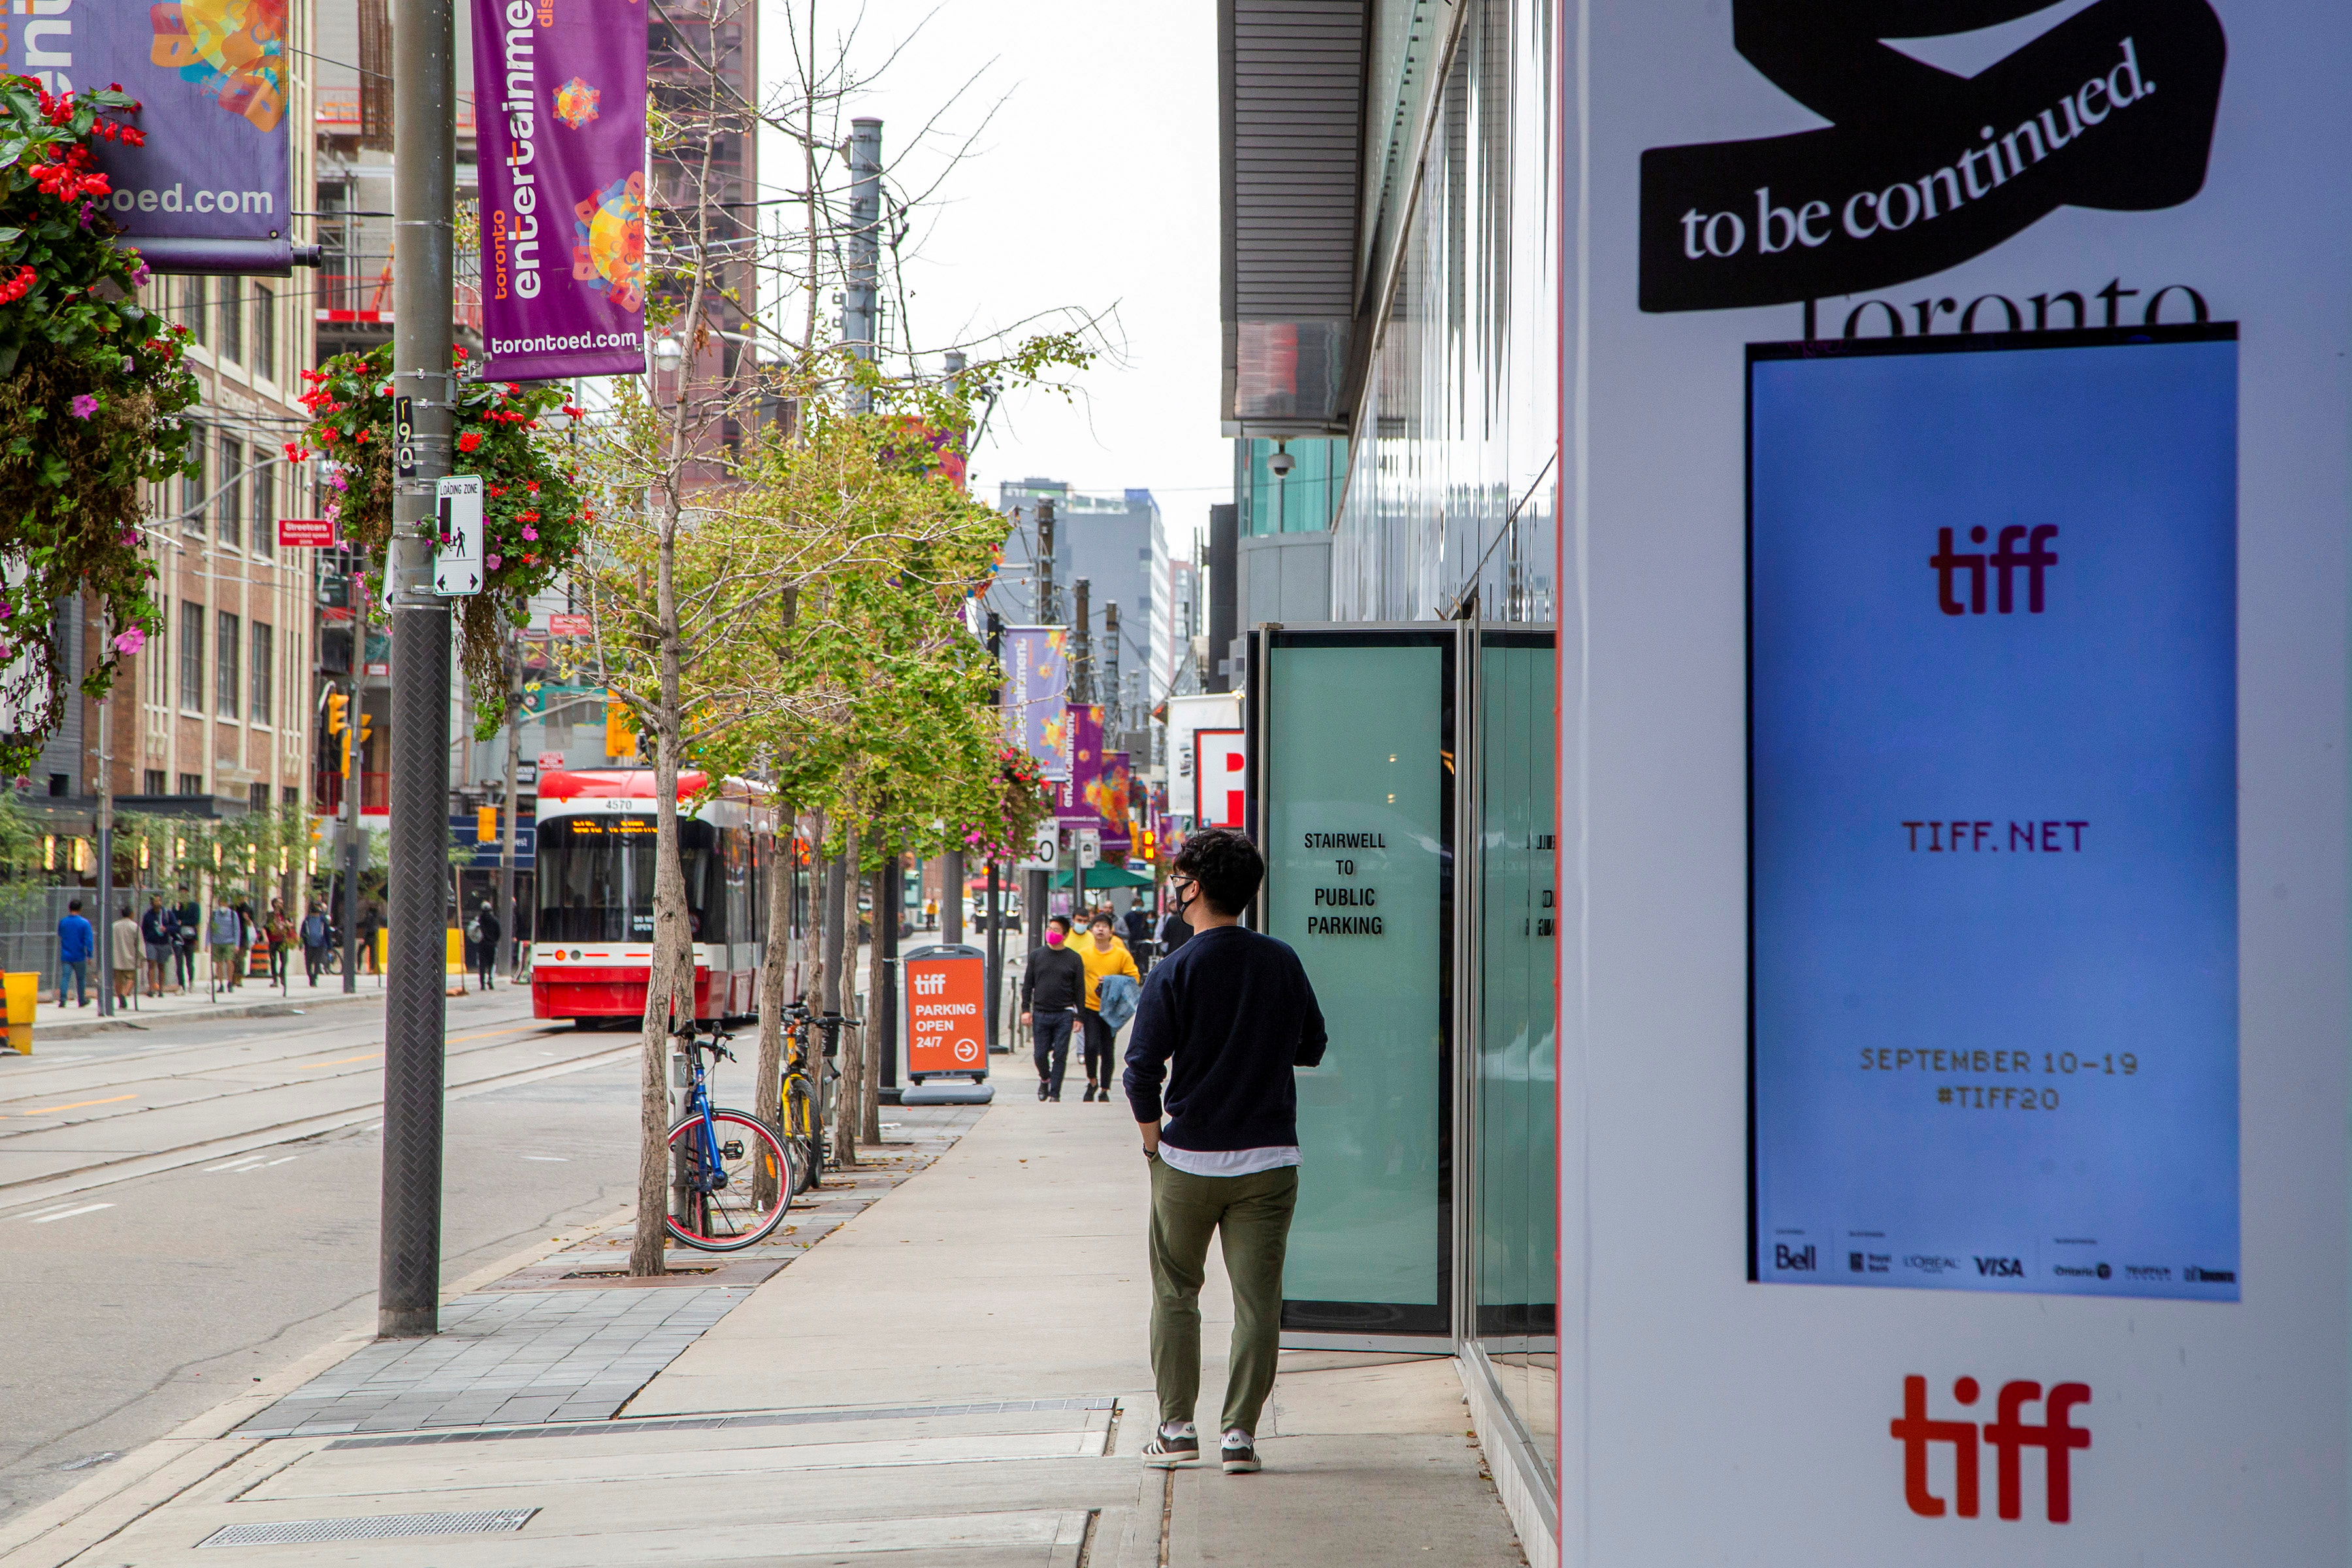 King Street West is seen nearly empty a day before the Toronto Film Festival  in Toronto, Ontario, Canada September 9, 2020. REUTERS/Carlos Osorio